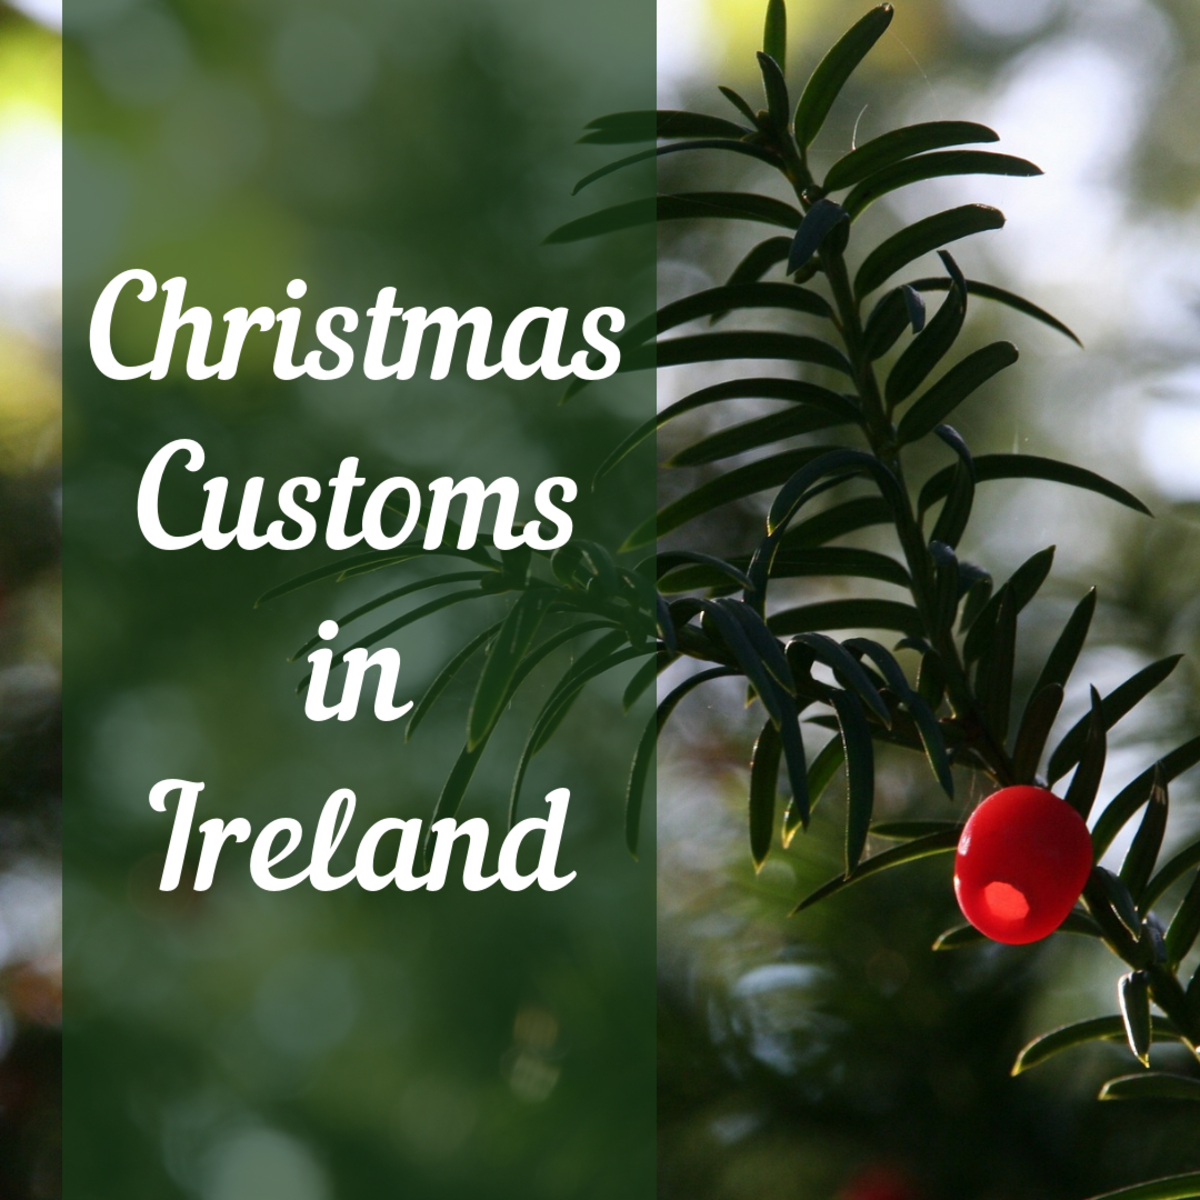 Explore some Celtic traditions and customs for Christmas.